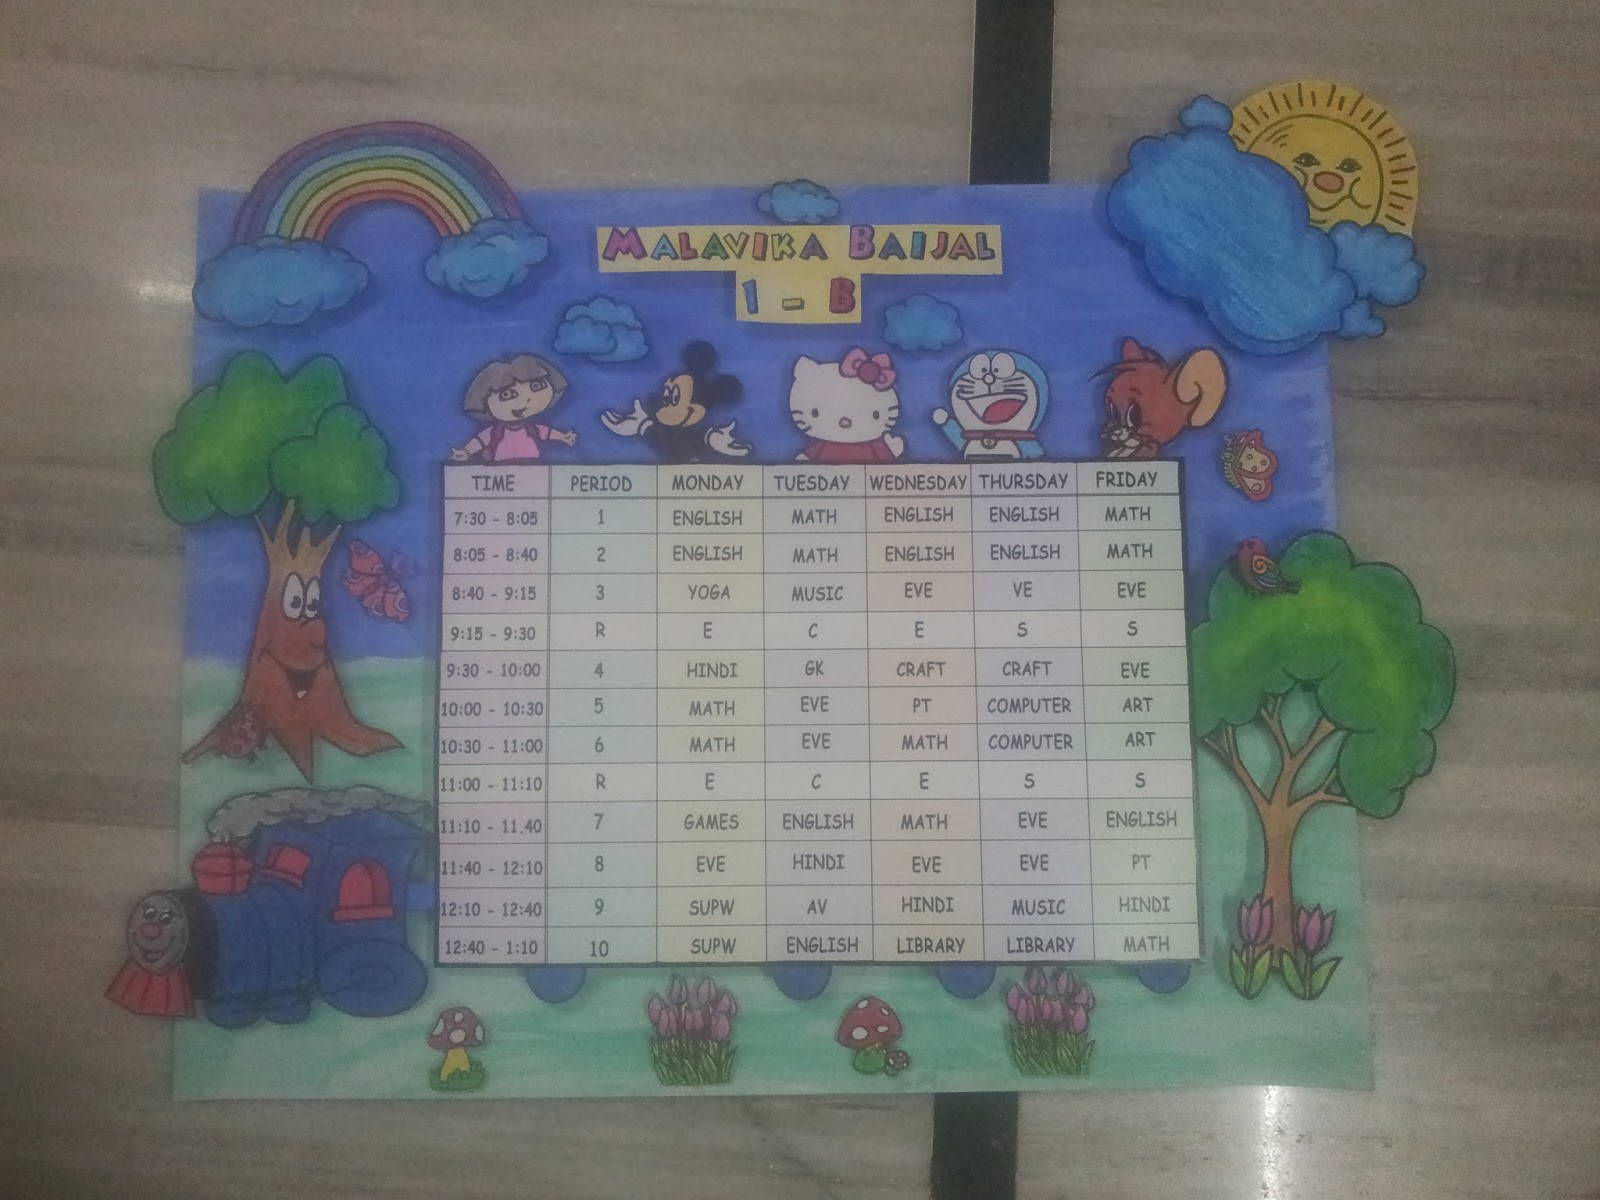 Mana 39 s creative ideas timetable and charts for classrooms Table making ideas